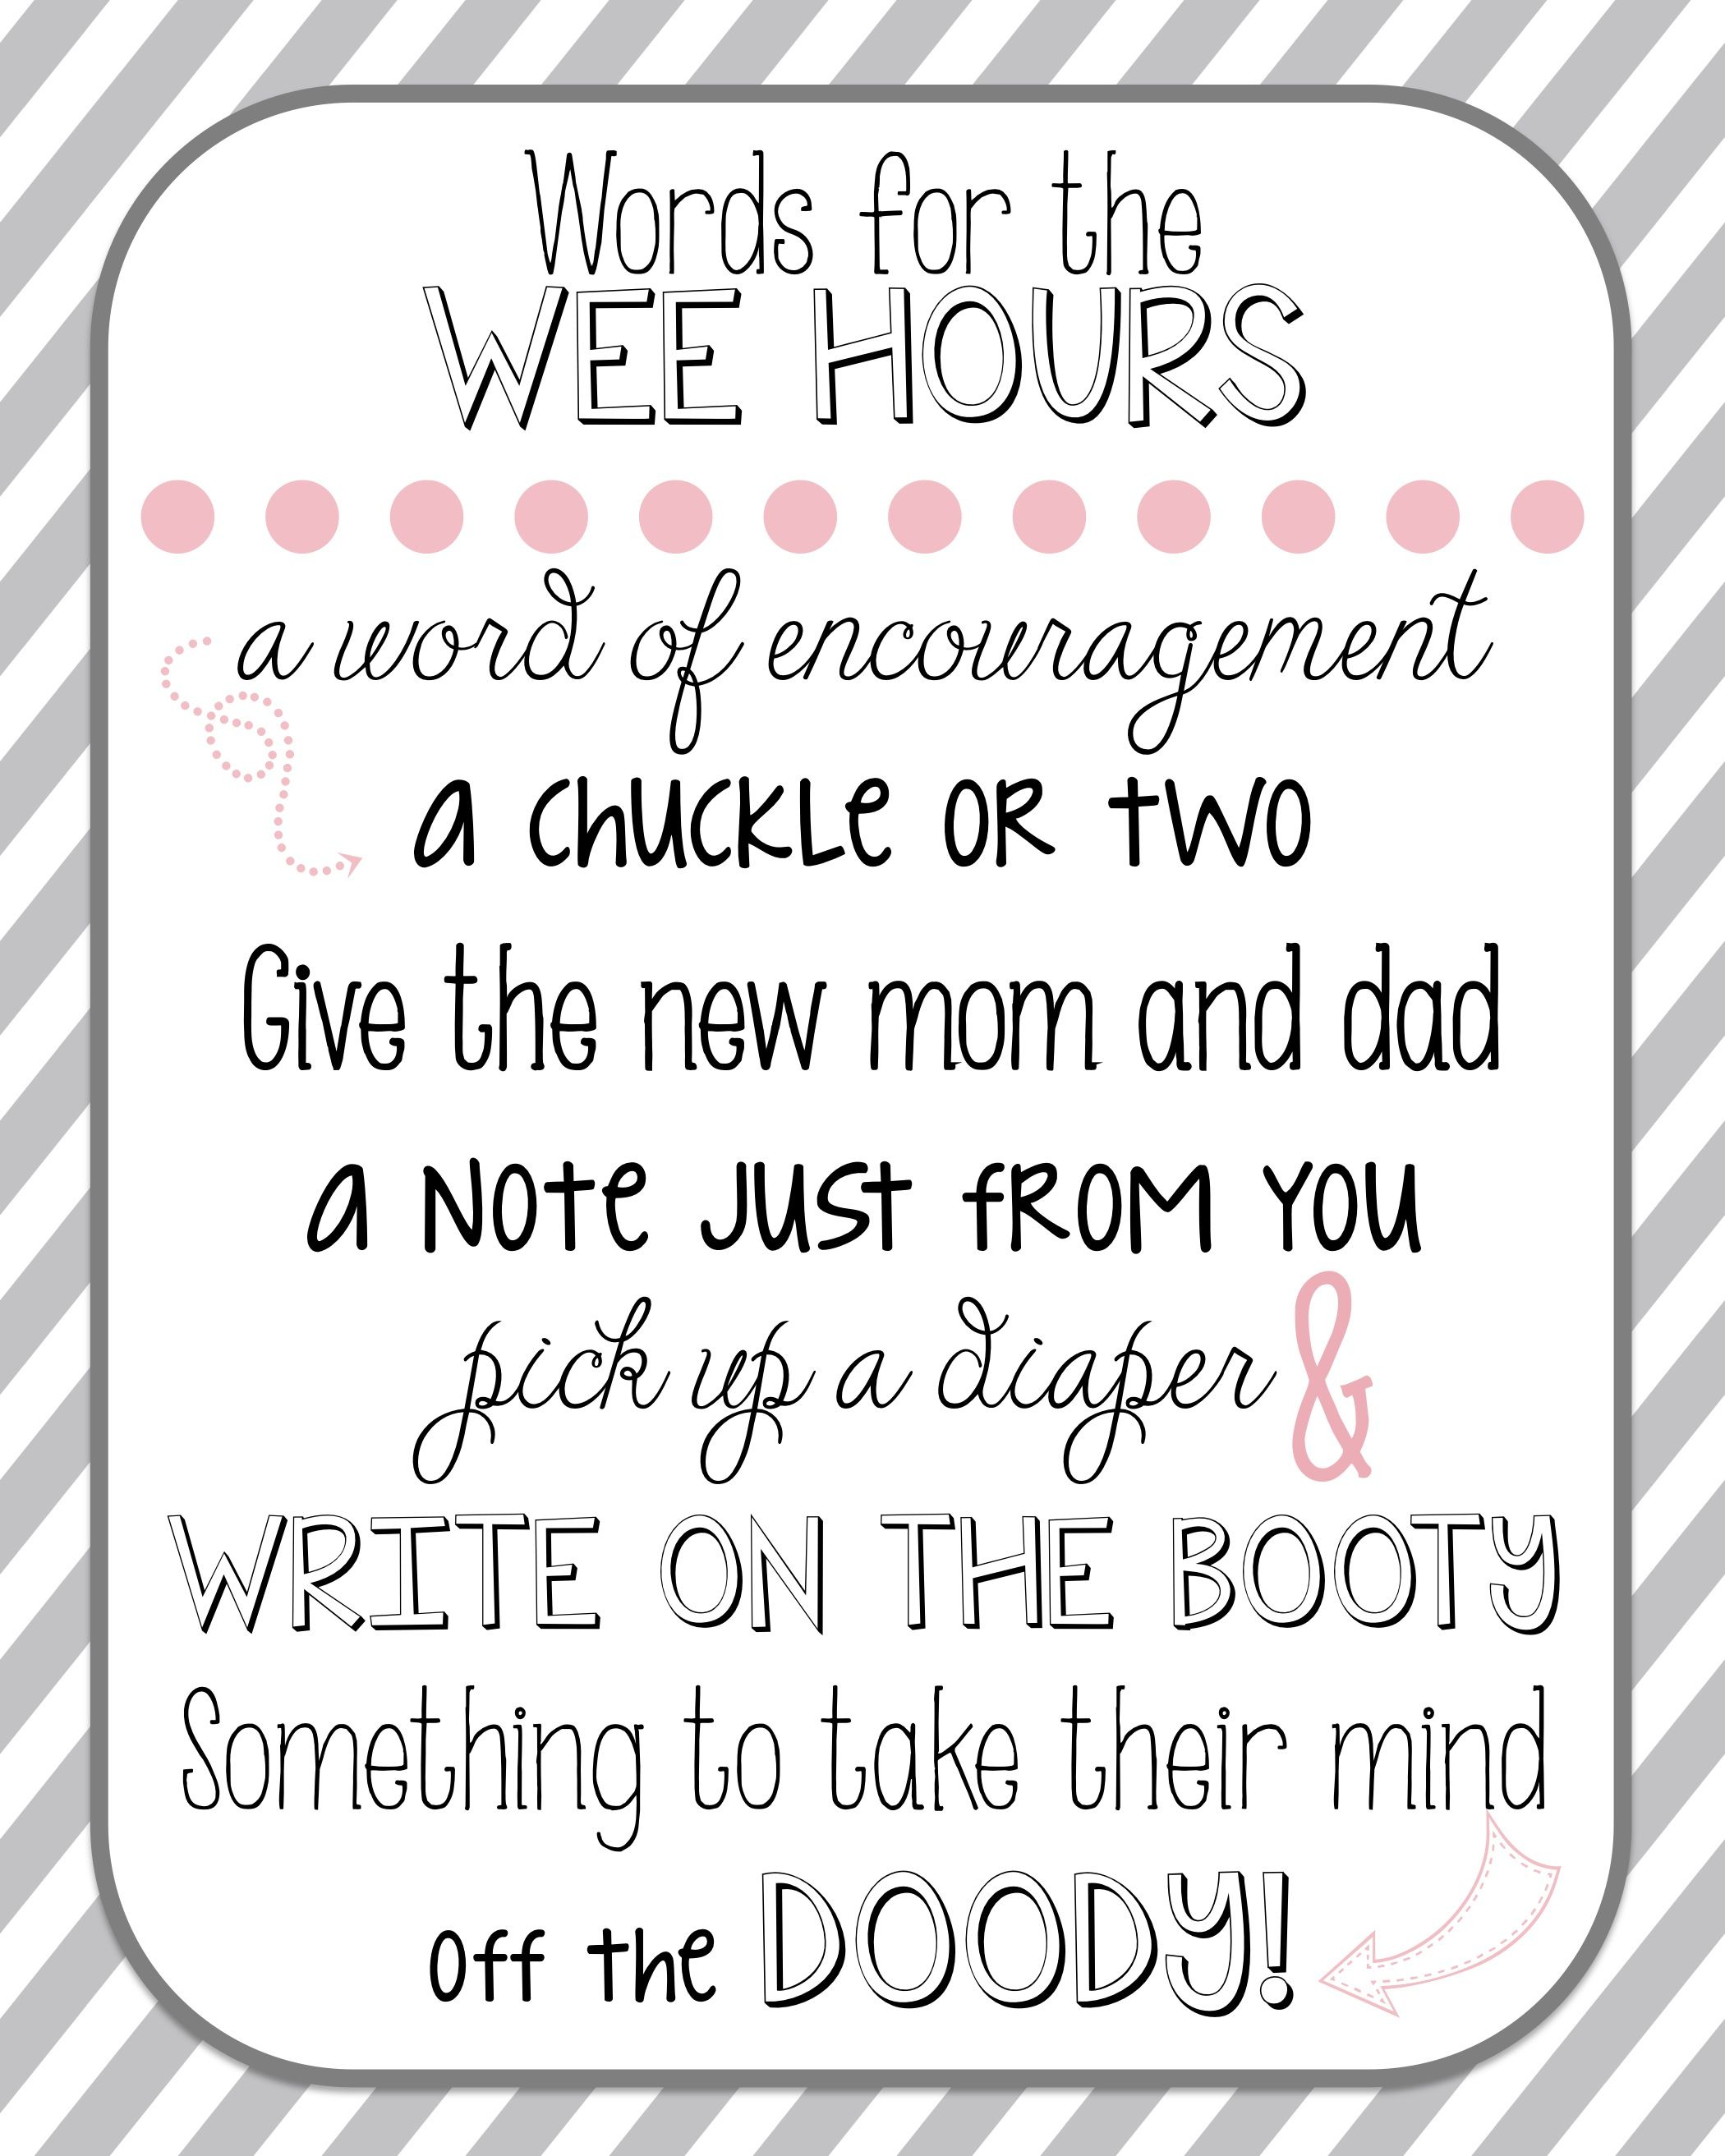 picture about Words for the Wee Hours Free Printable named Diaper notes for youngster shower printable! Additionally readily available inside